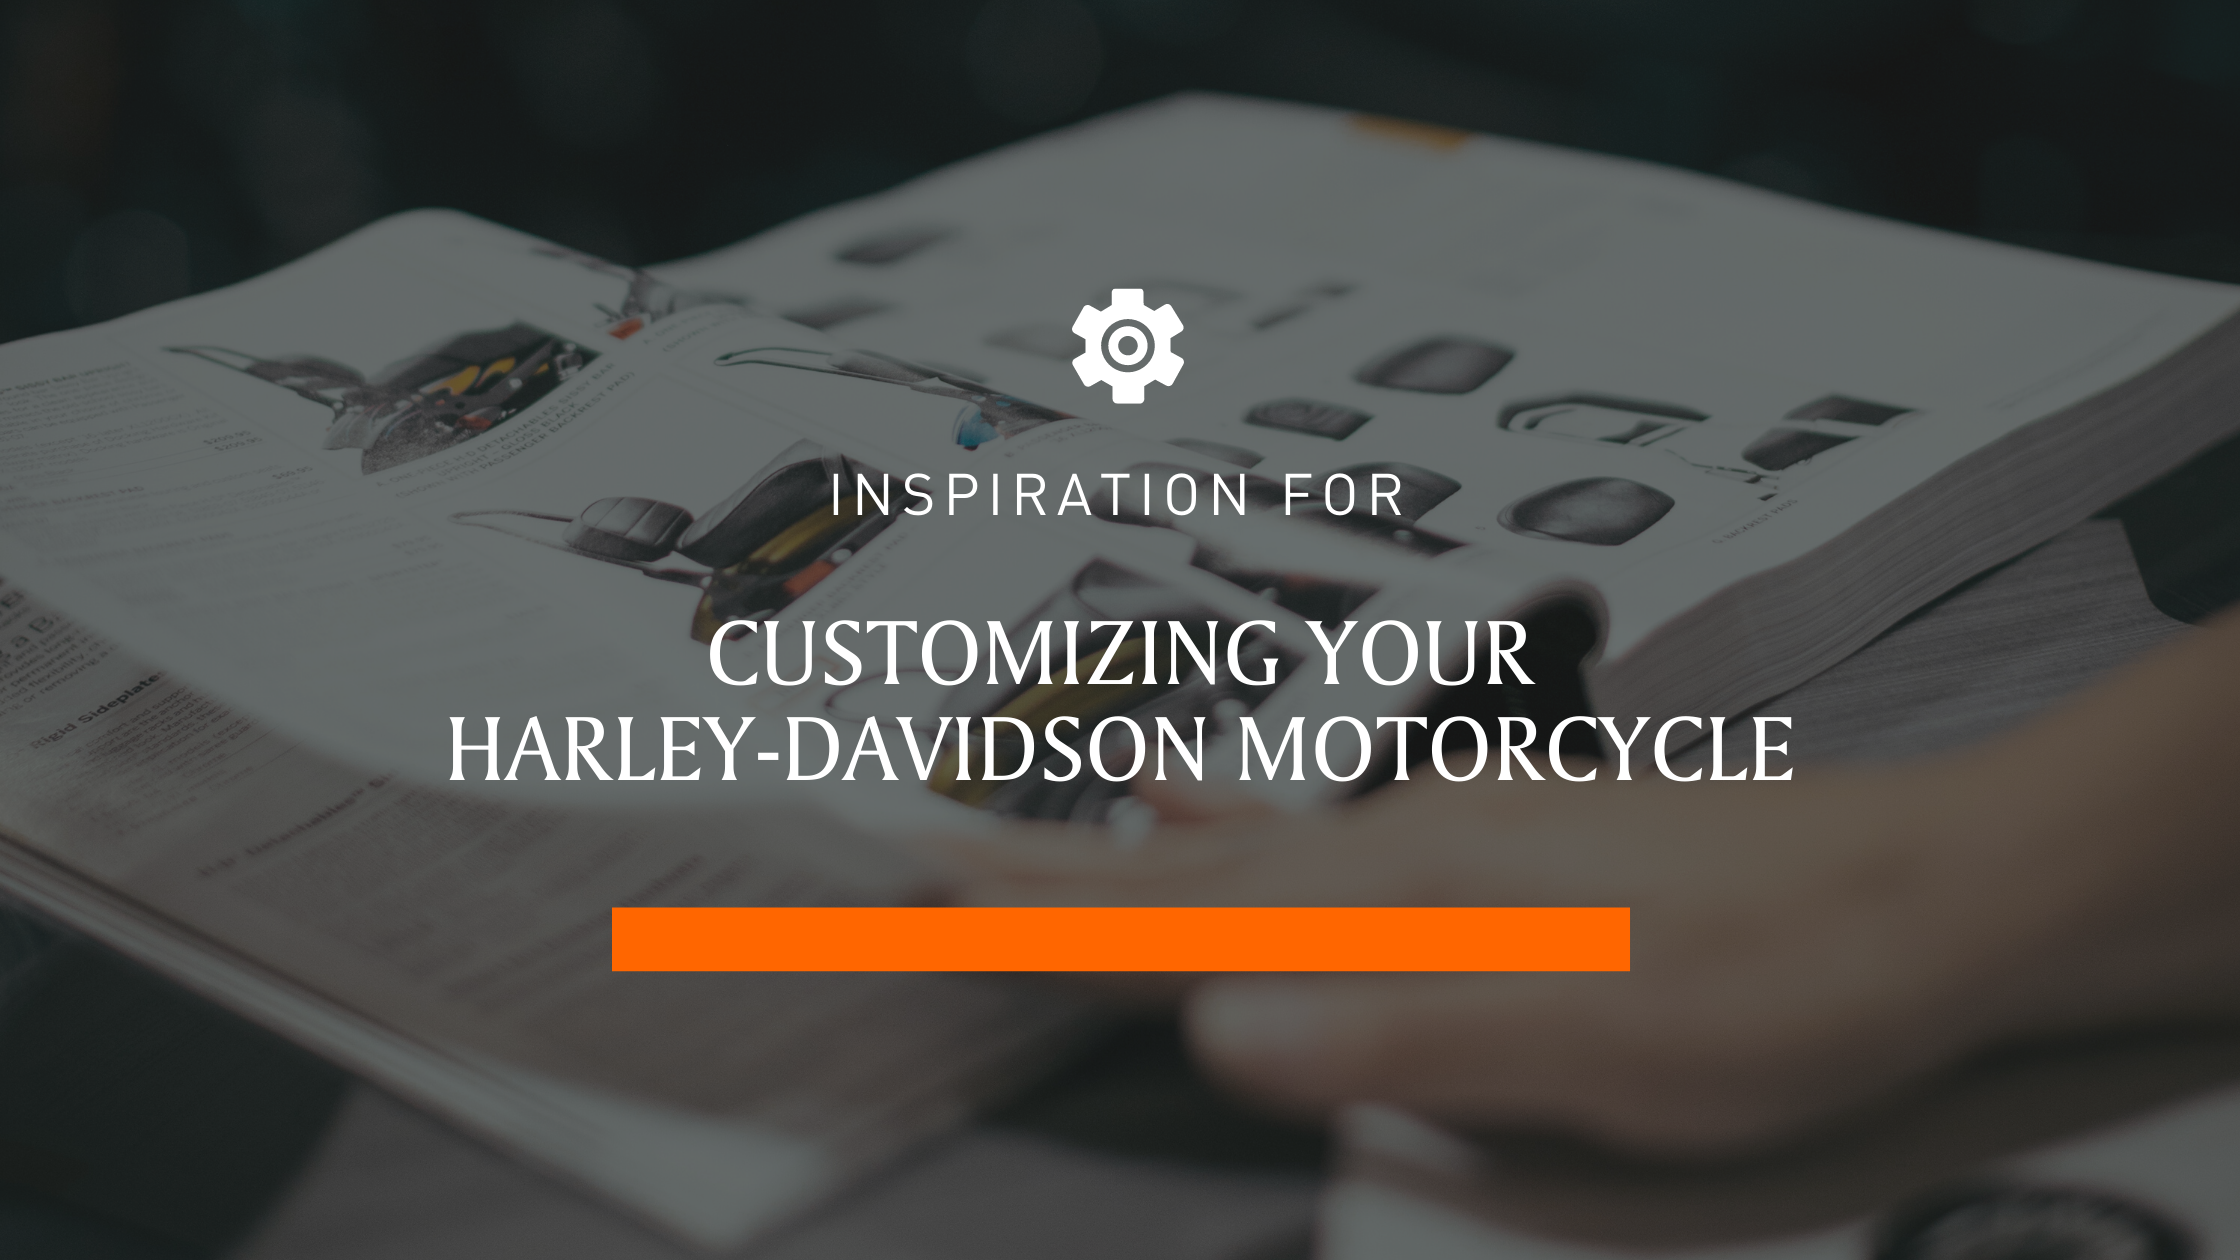 Inspiration for Customizing Your Harley-Davidson Motorcycle